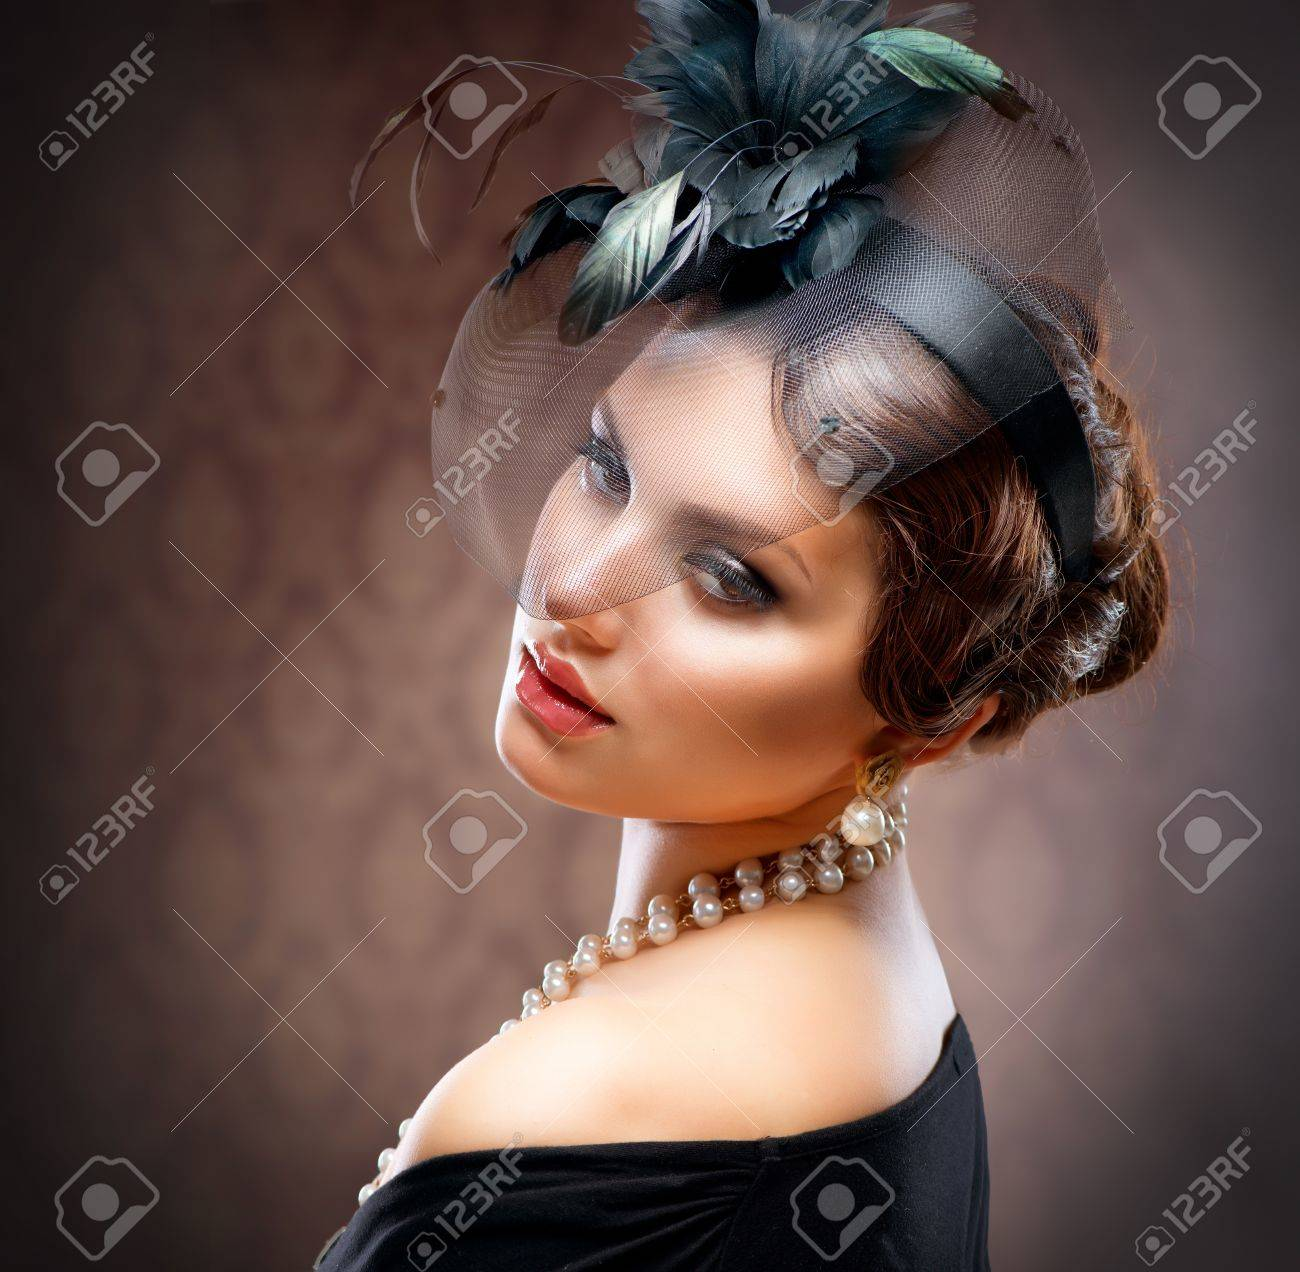 Retro Beauty Portrait  Vintage Styled  Beautiful Young Woman Stock Photo - 14193412